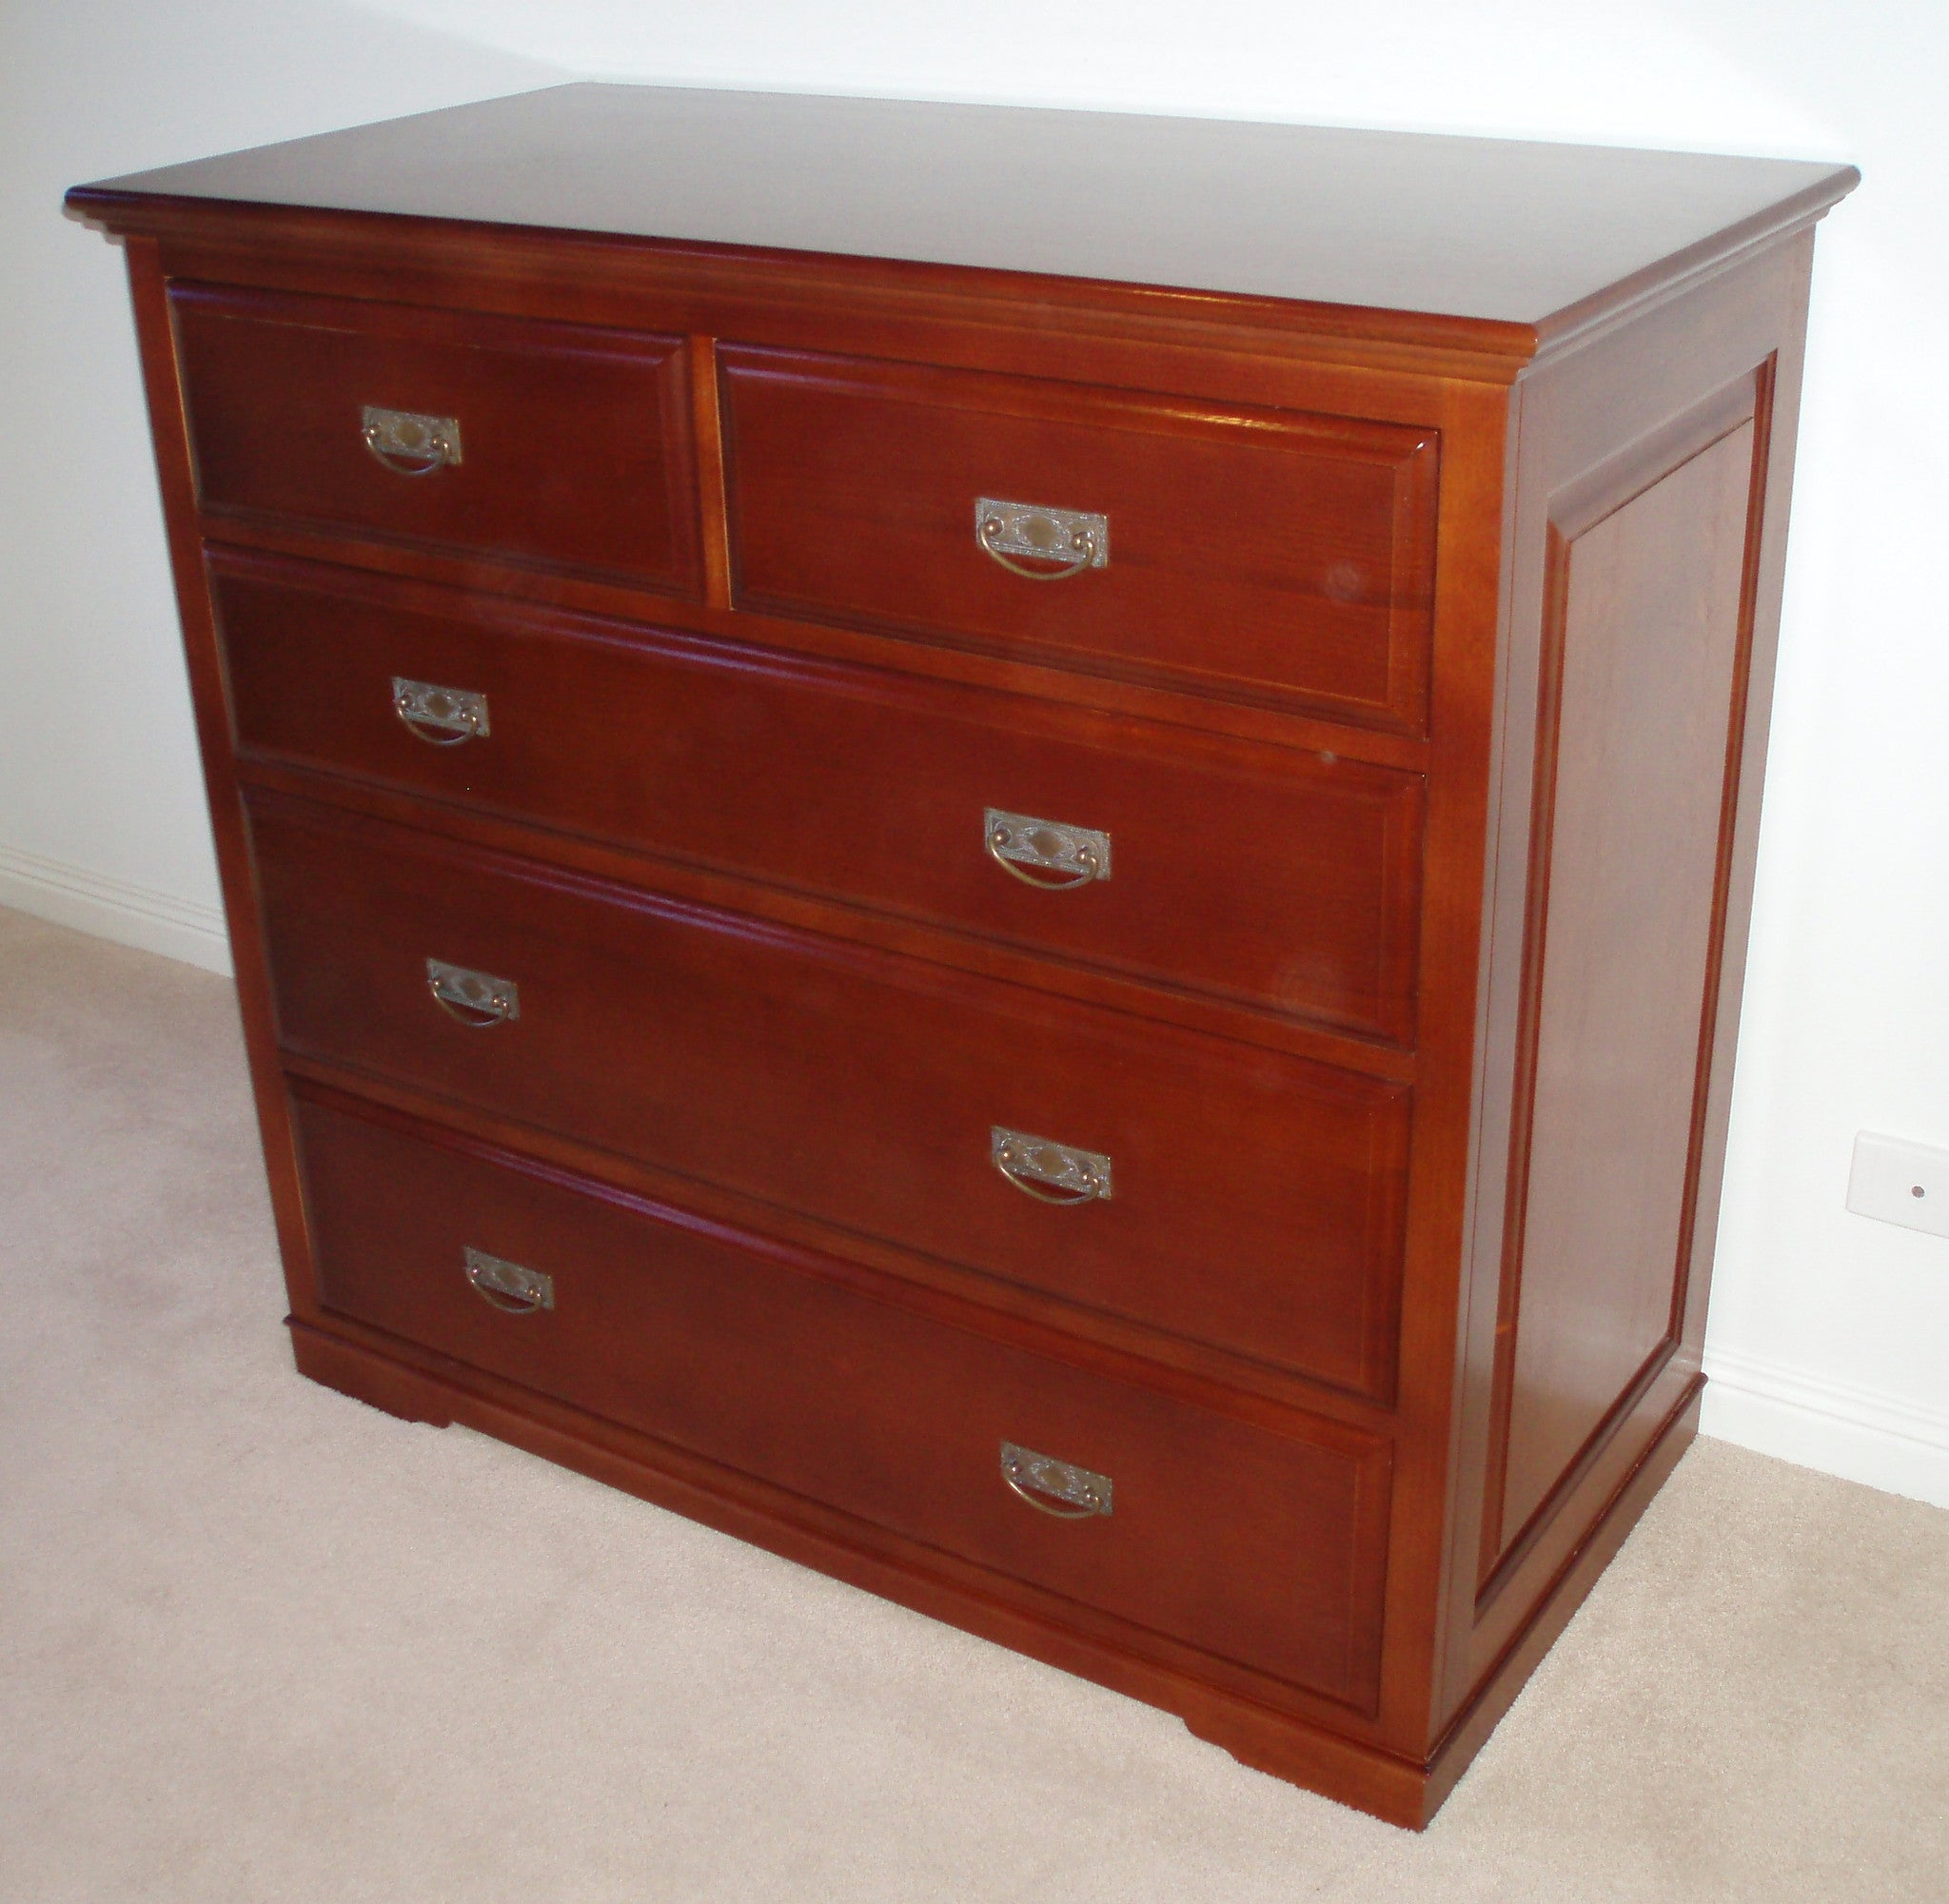 Wellington Chest of drawers